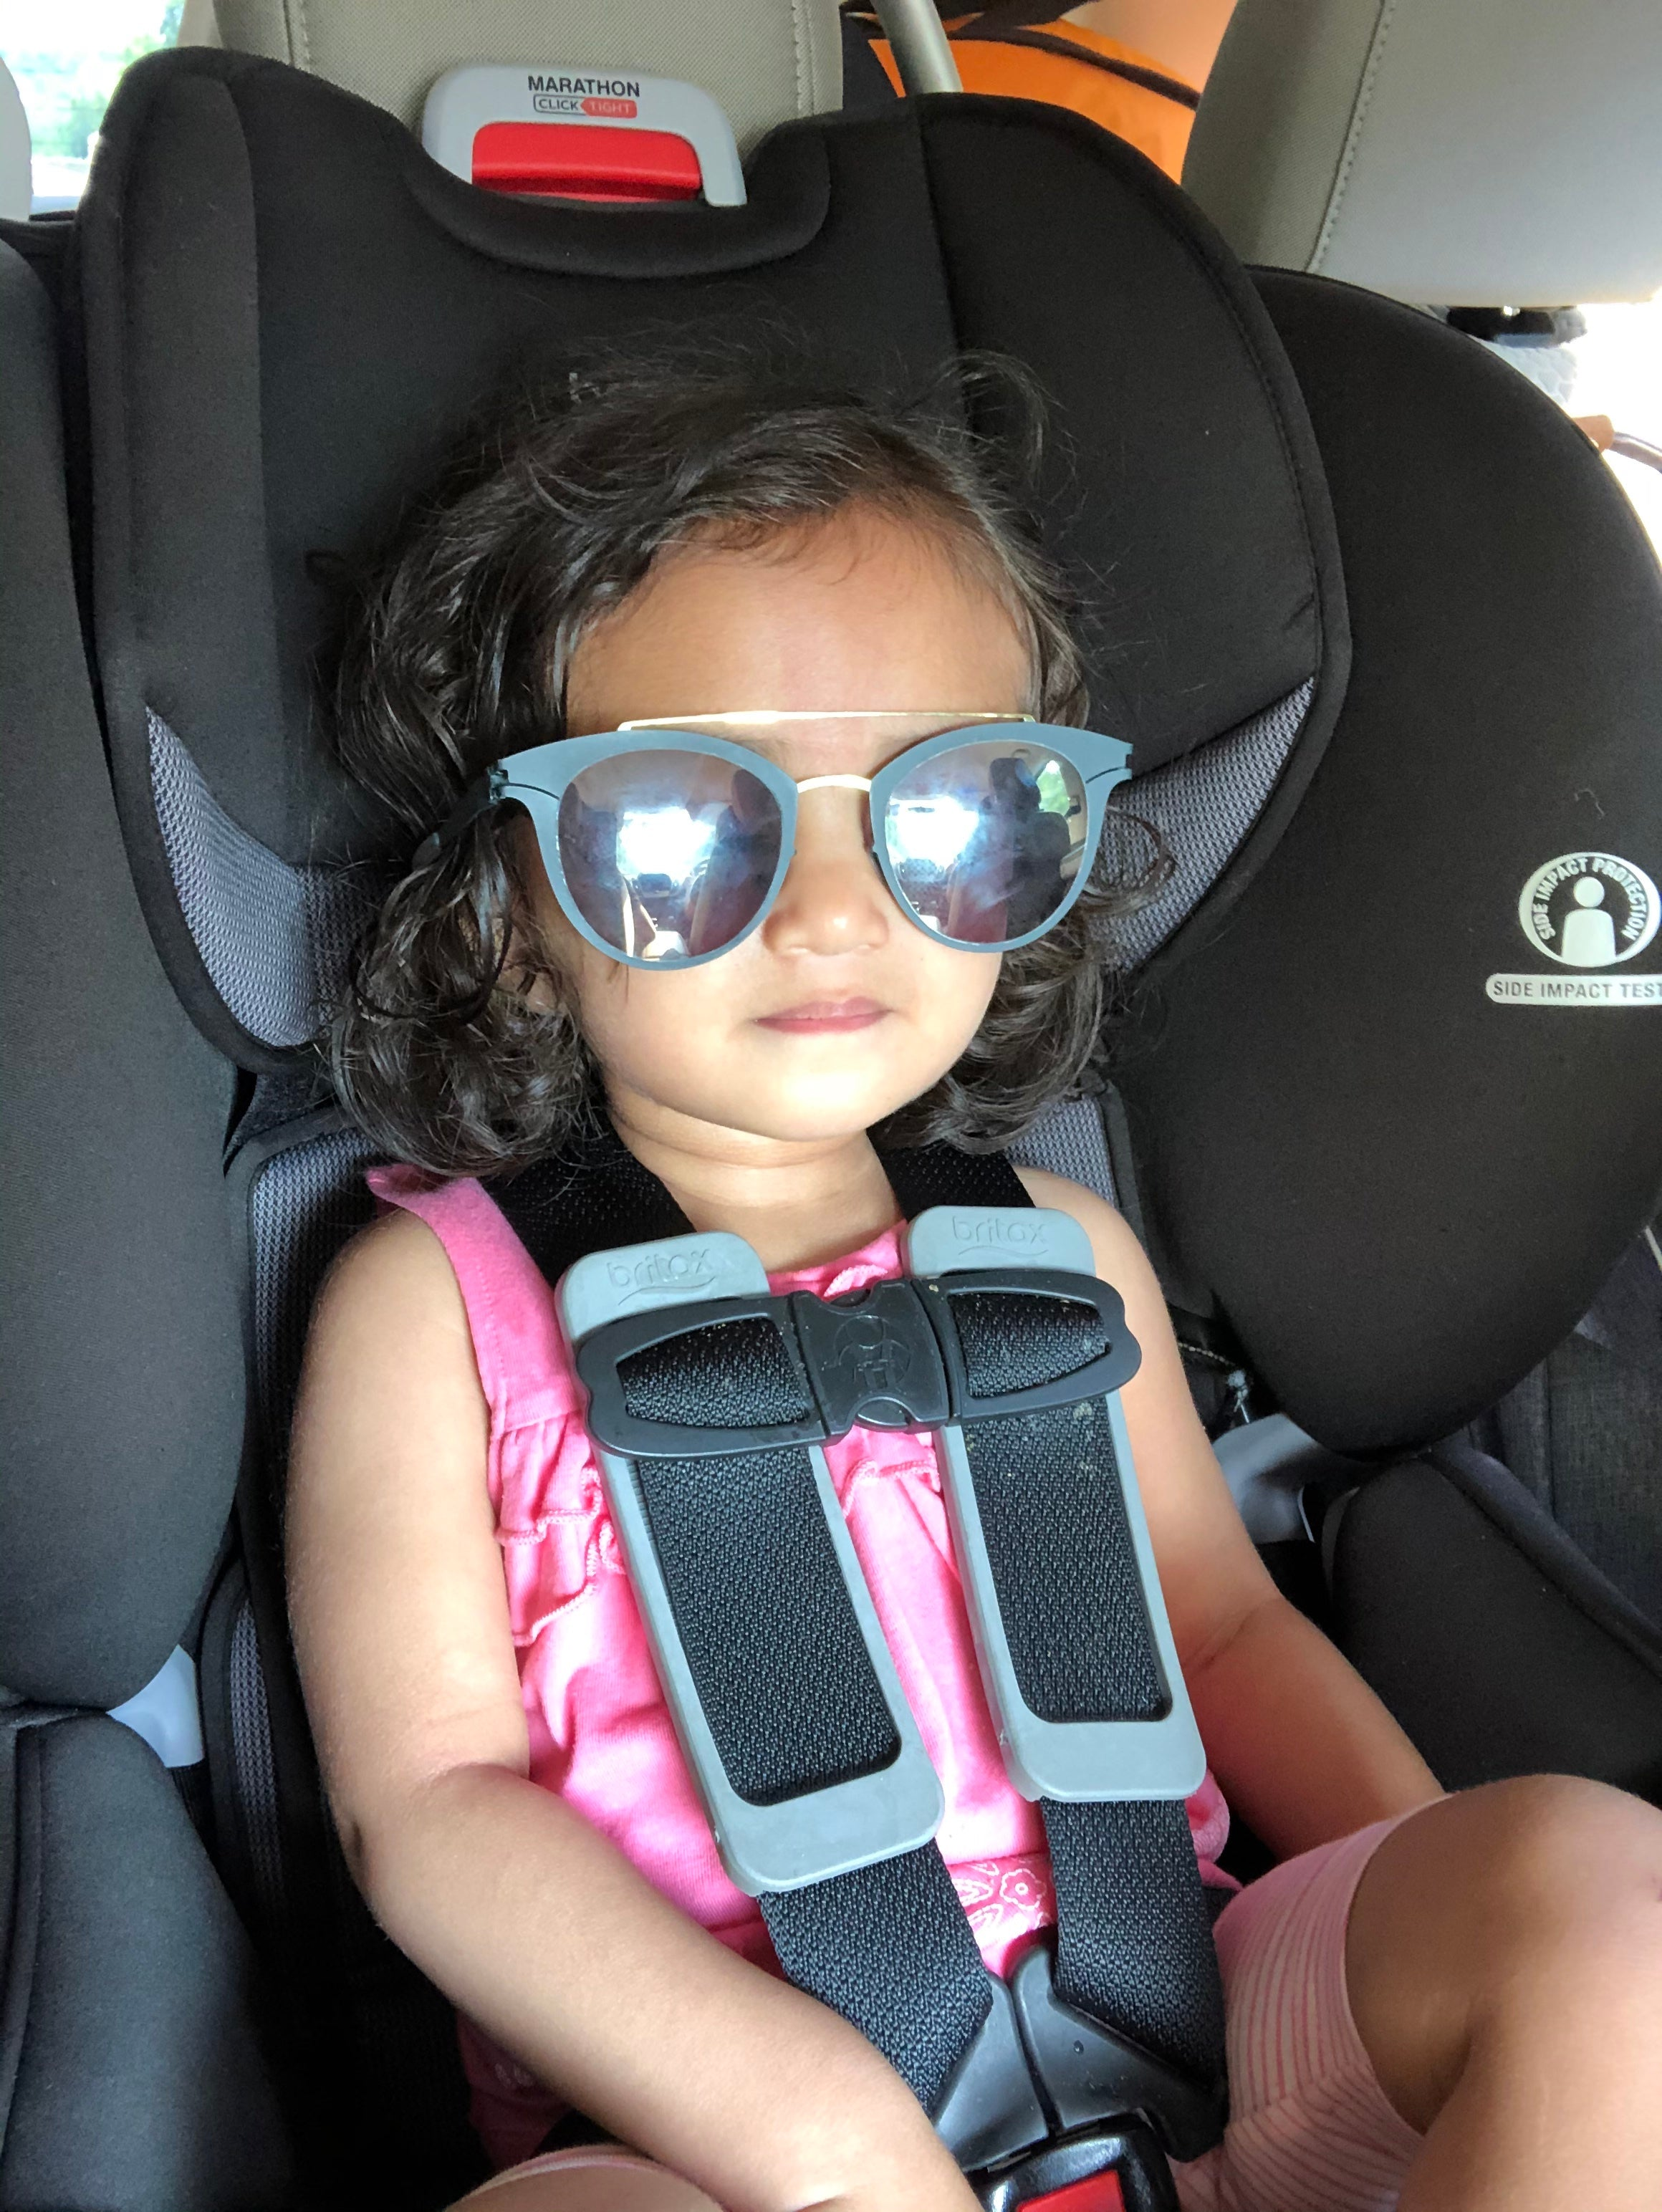 Properly buckled carseat safety